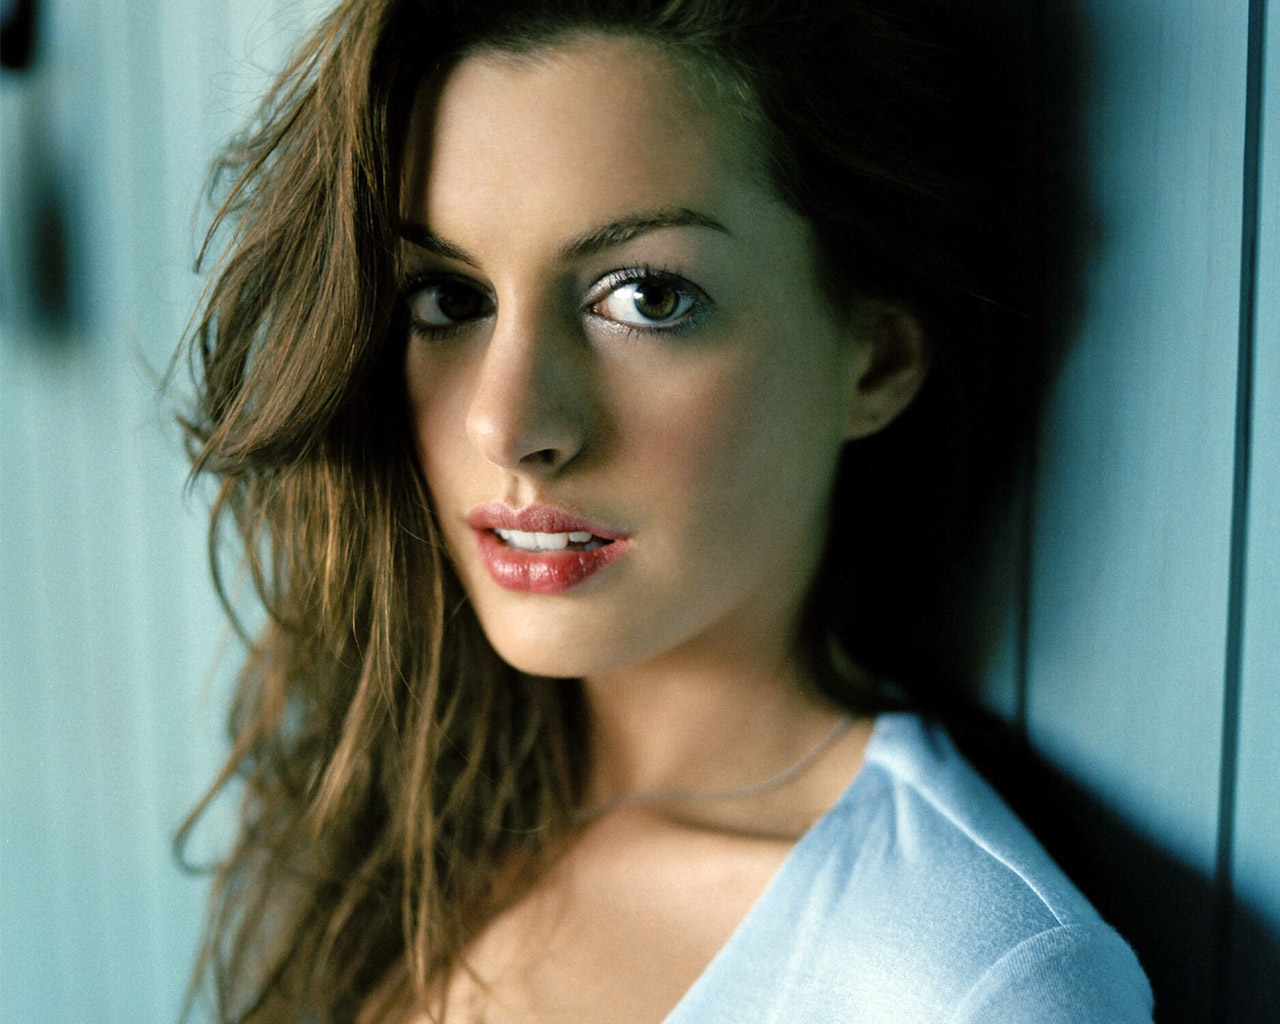 http://3.bp.blogspot.com/-6WU6XZ3w6IM/Tzdg_2v6aqI/AAAAAAAADrU/WkN1SD72TCk/s1600/Anne-hathaway-2012-Most-Beautiful-girl.jpg